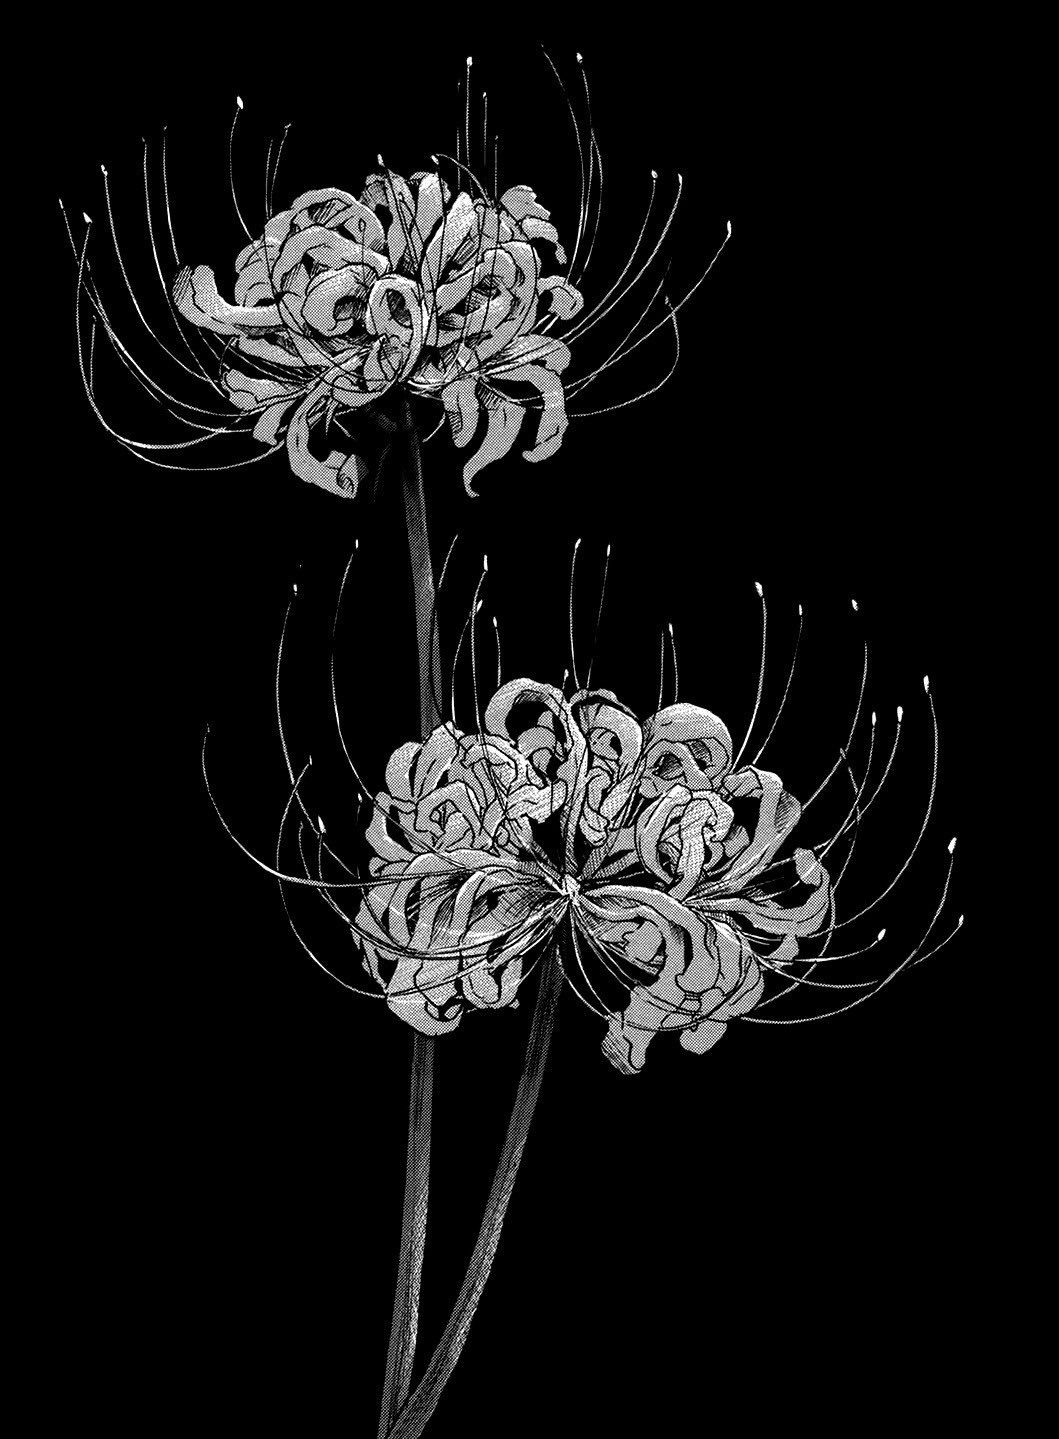 Sc On Twitter Red Spider Lily Spider Lily Tattoo Anime Monochrome Coolest lily flower wallpaper images